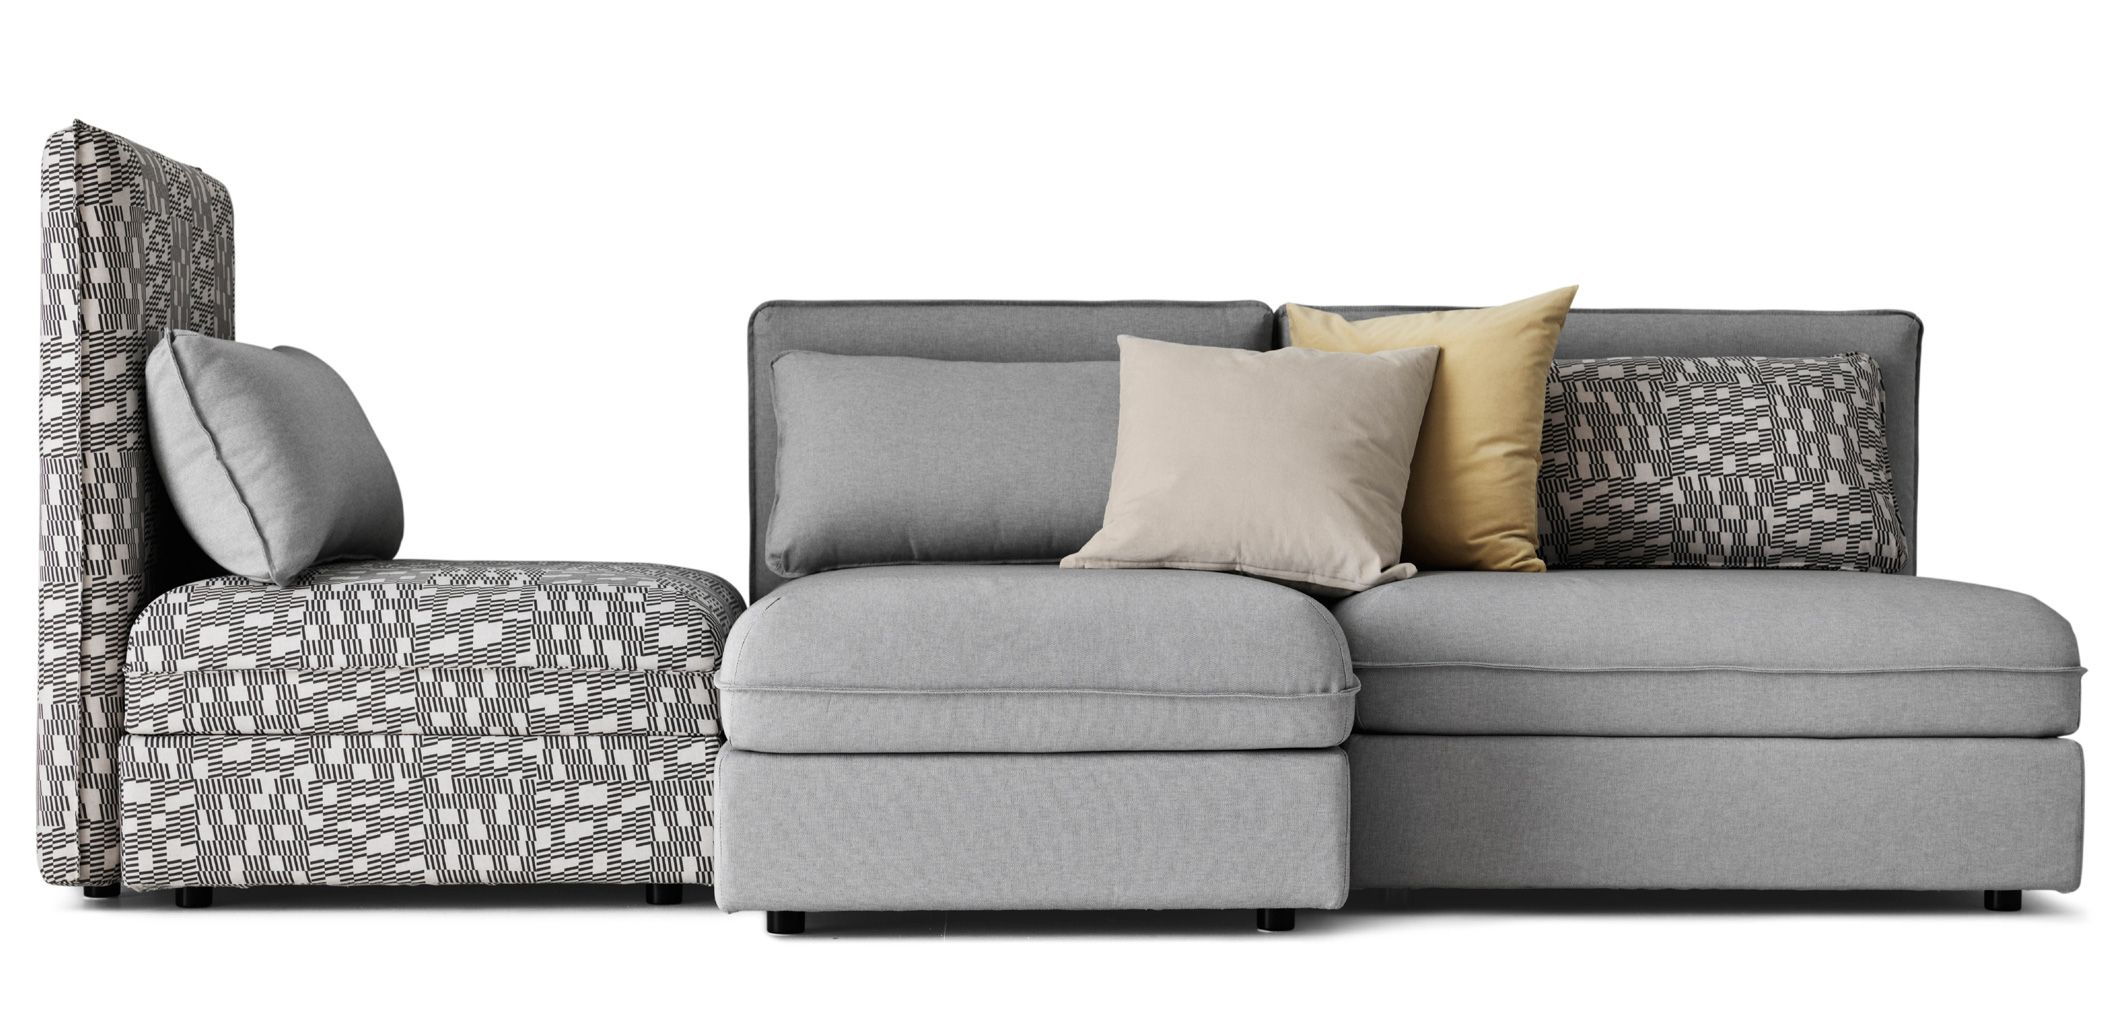 Colorful Inexpensive Modular Sofa , Lovely Inexpensive